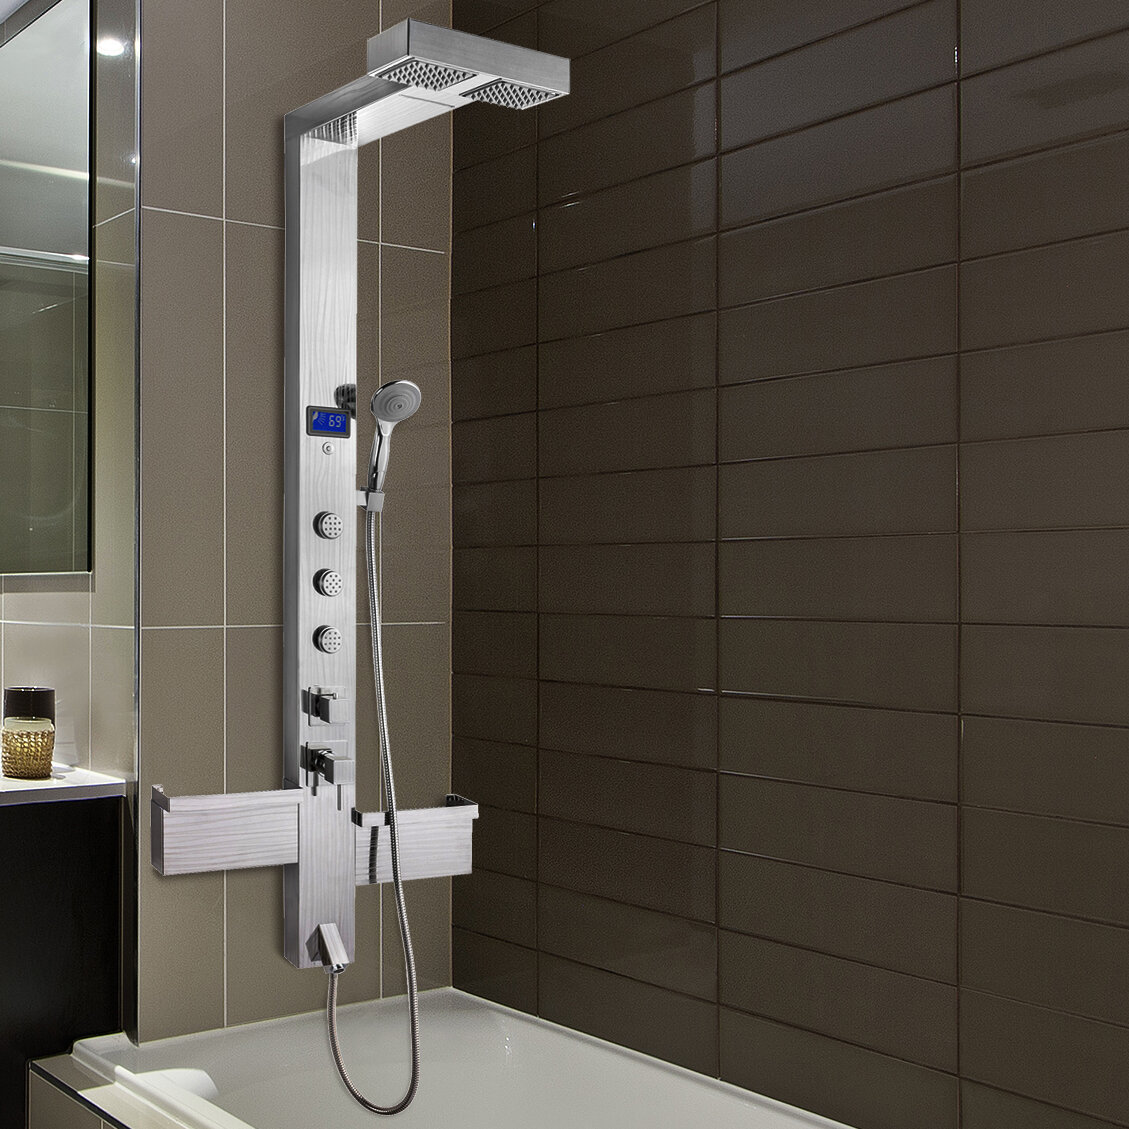 3 Jet Shower Panel System With Rainfall Waterfall Shower Head Led Display And Shampoo Holder